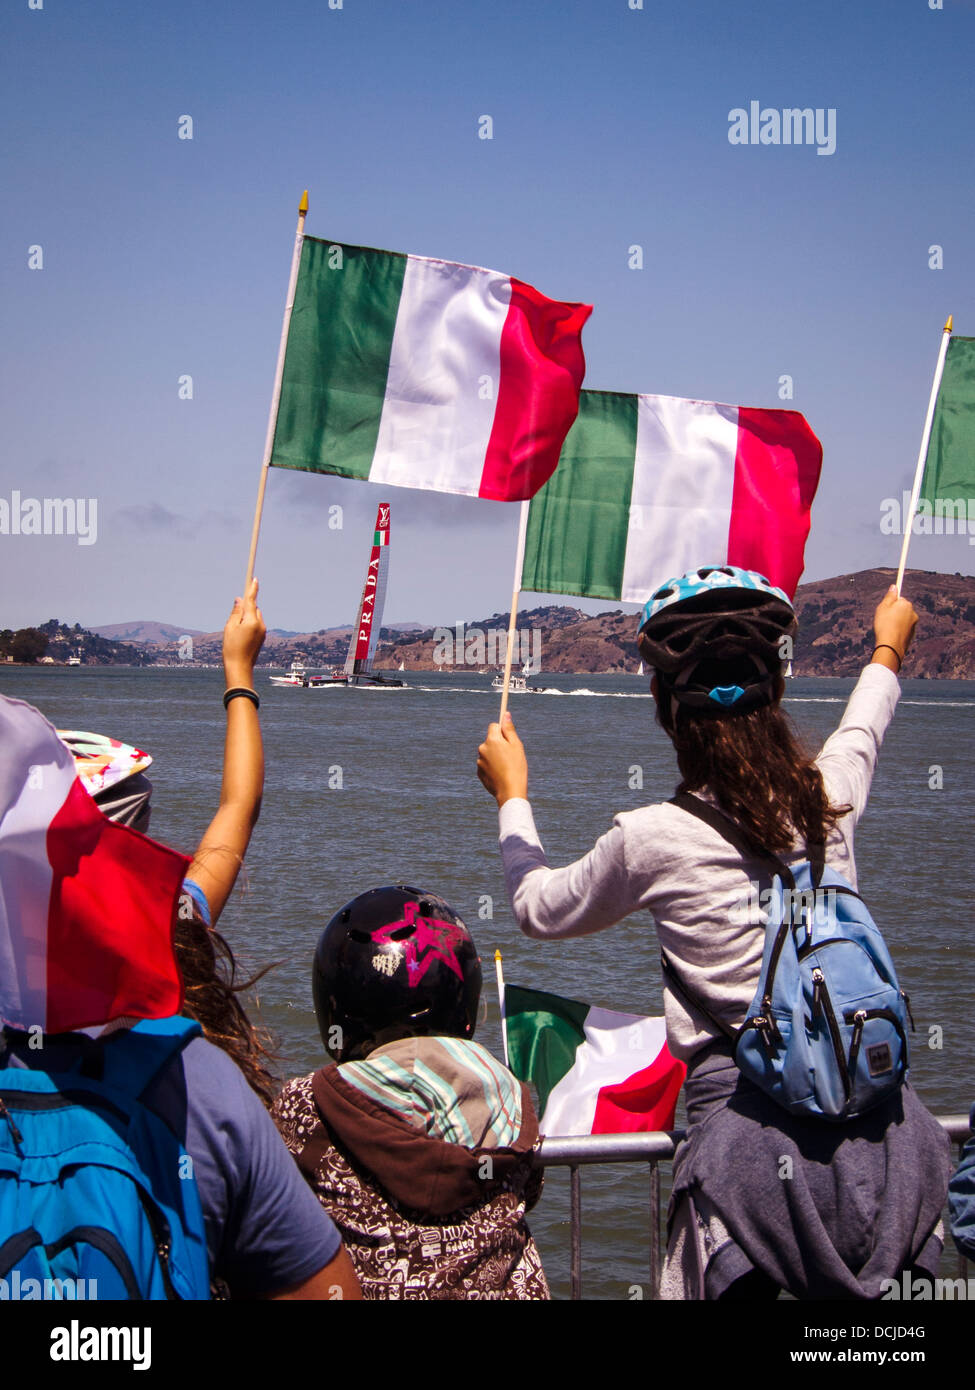 Luna Rosa Challenge is cheered on by fans in San Francisco Bay competing against the Emirates Team New Zealand in - Stock Image